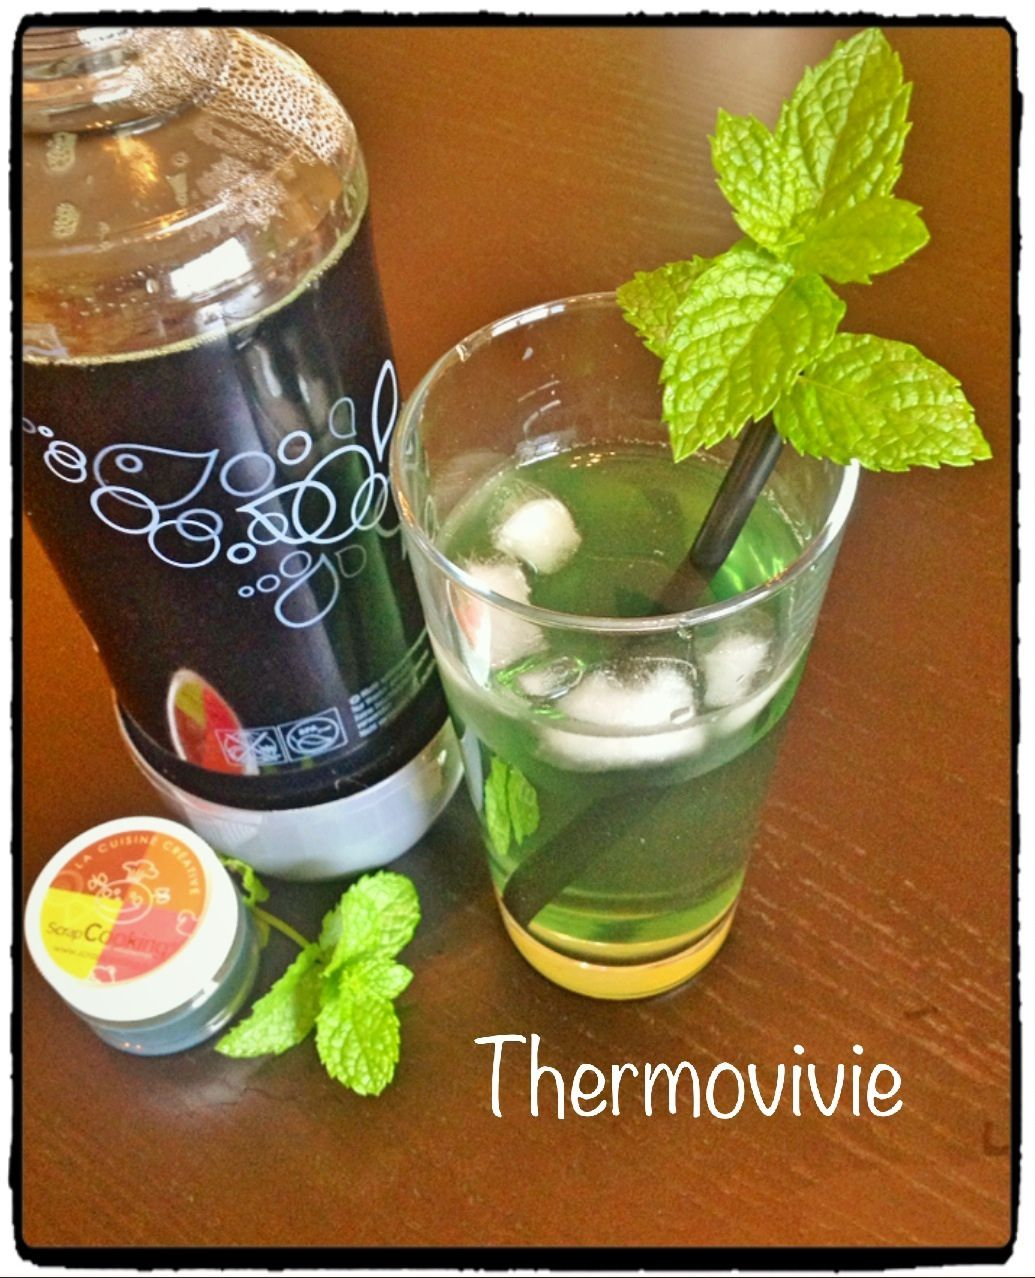 Sirop de menthe au thermomix thermovivie - Thermomix ne pese plus ...